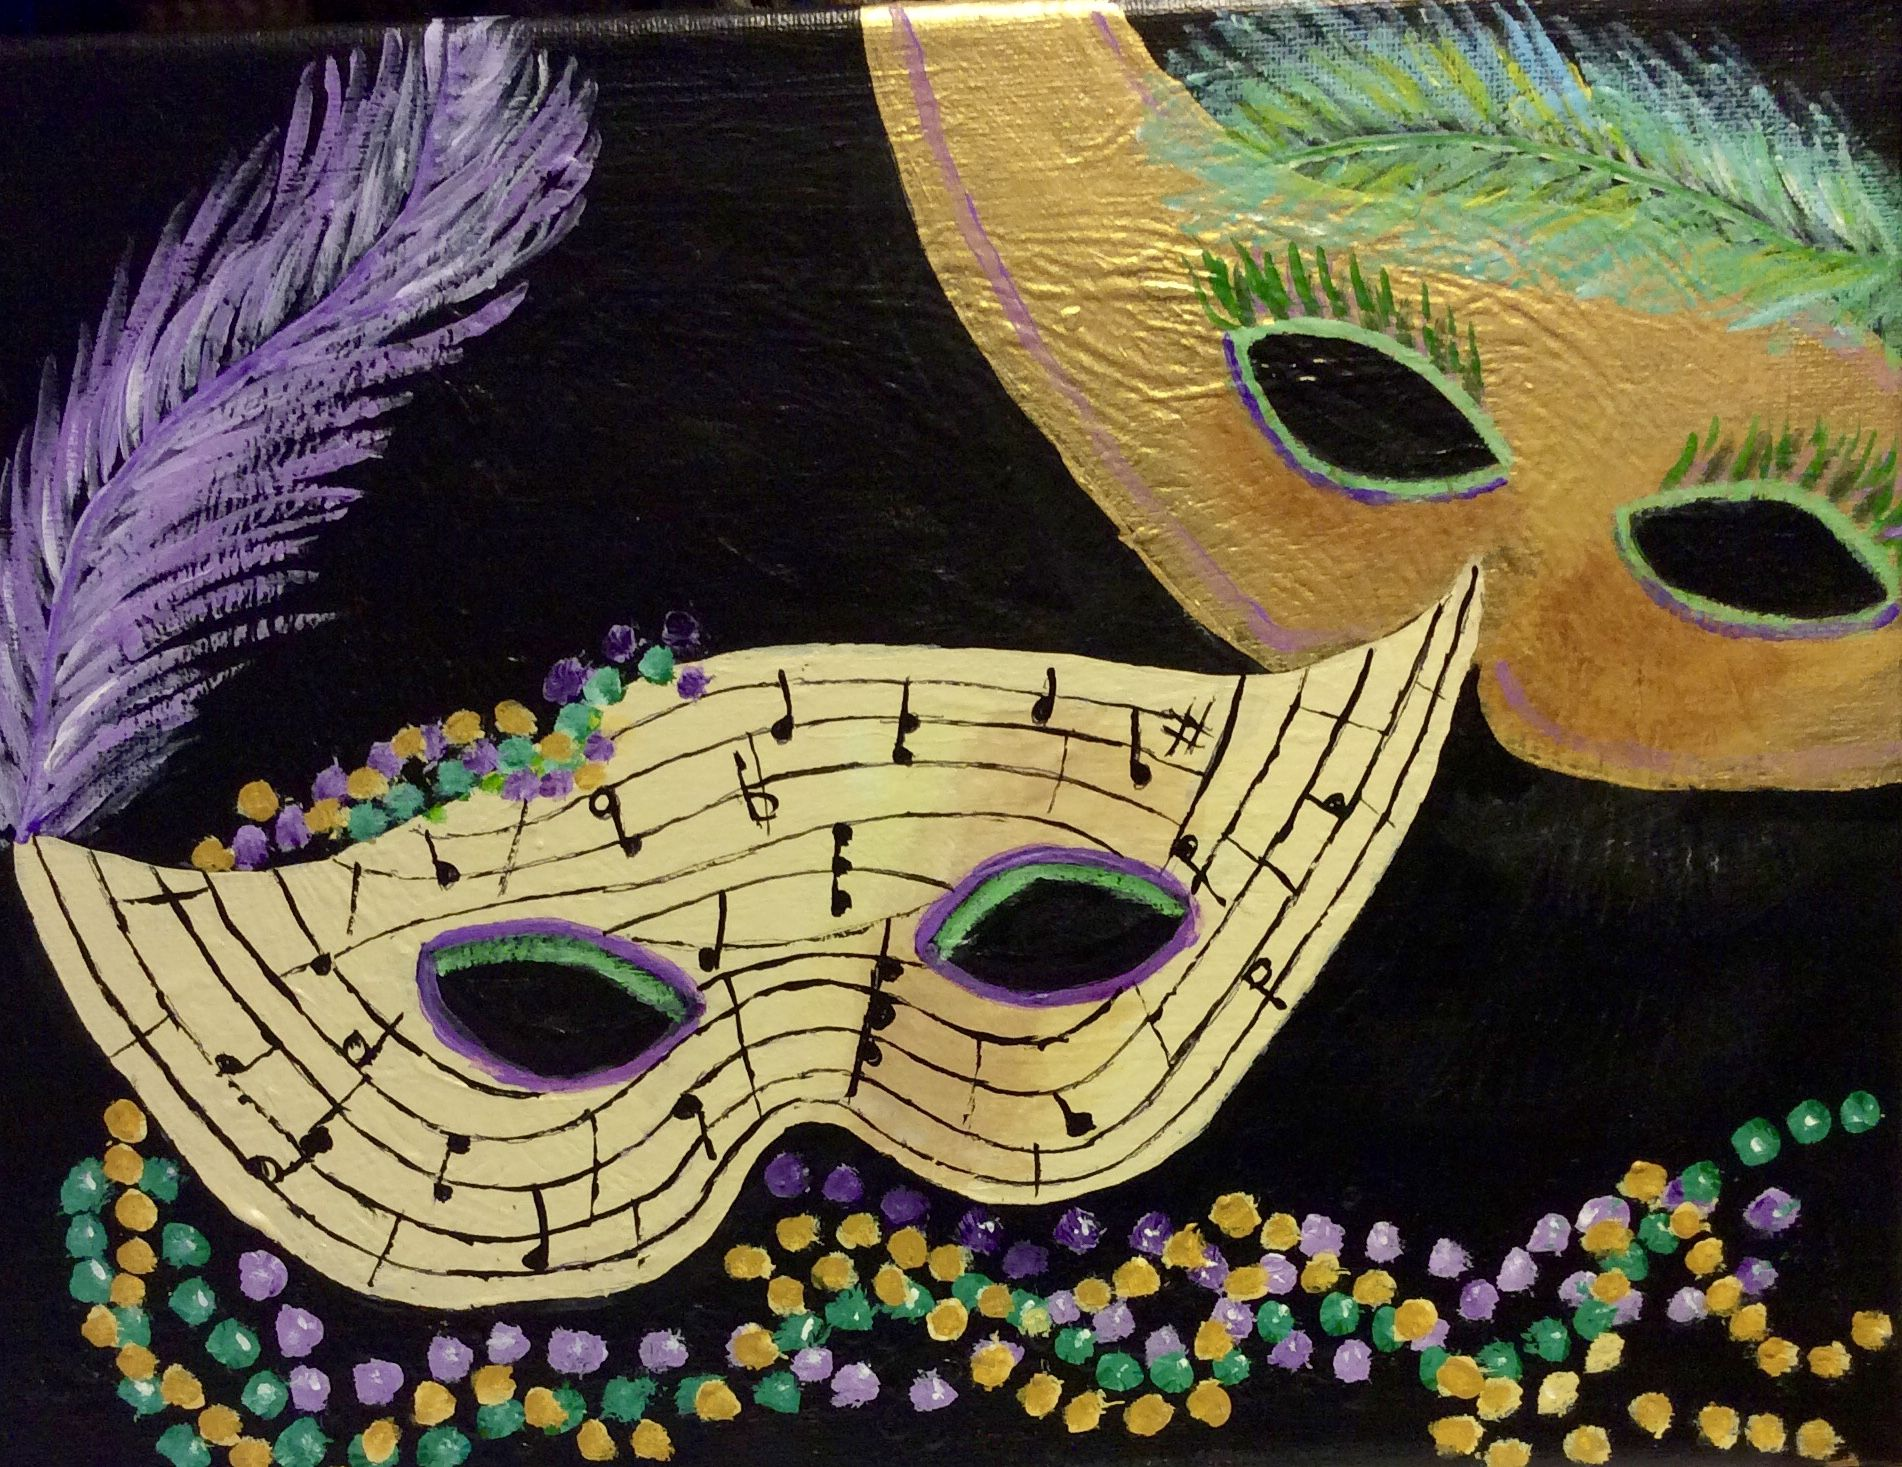 Cathie Fox was in the Mardi Gras spirit, as she completed these fun masks in two paintings. Love the feathers.